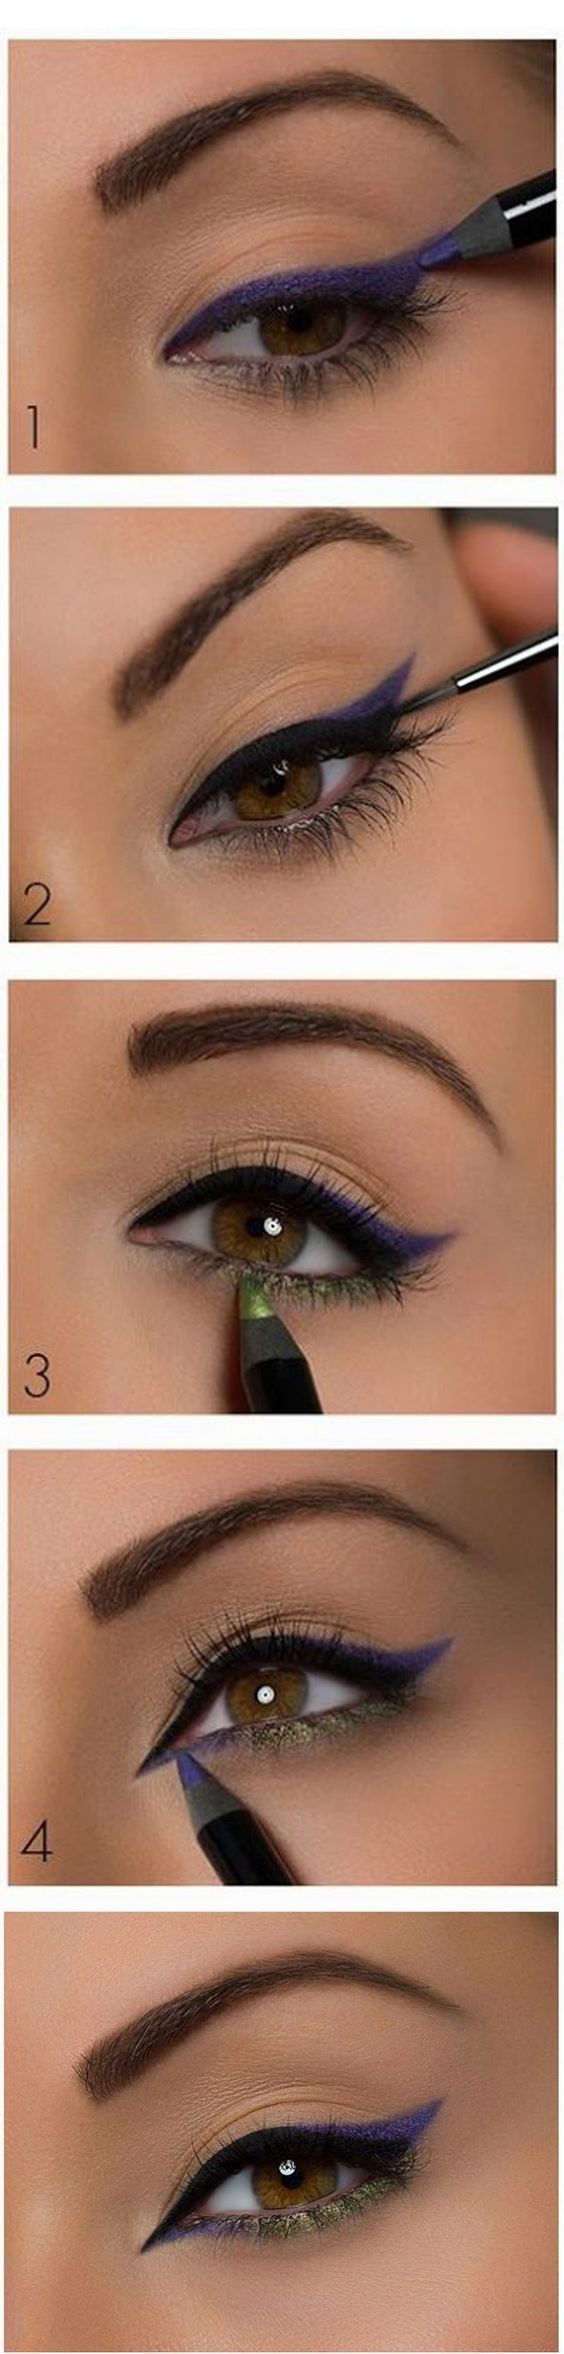 Colorful Eyeliner As a modern, smart and beautiful girl (a true Fashionista) you are obligated to experiment with colors until you find the right ones for you: